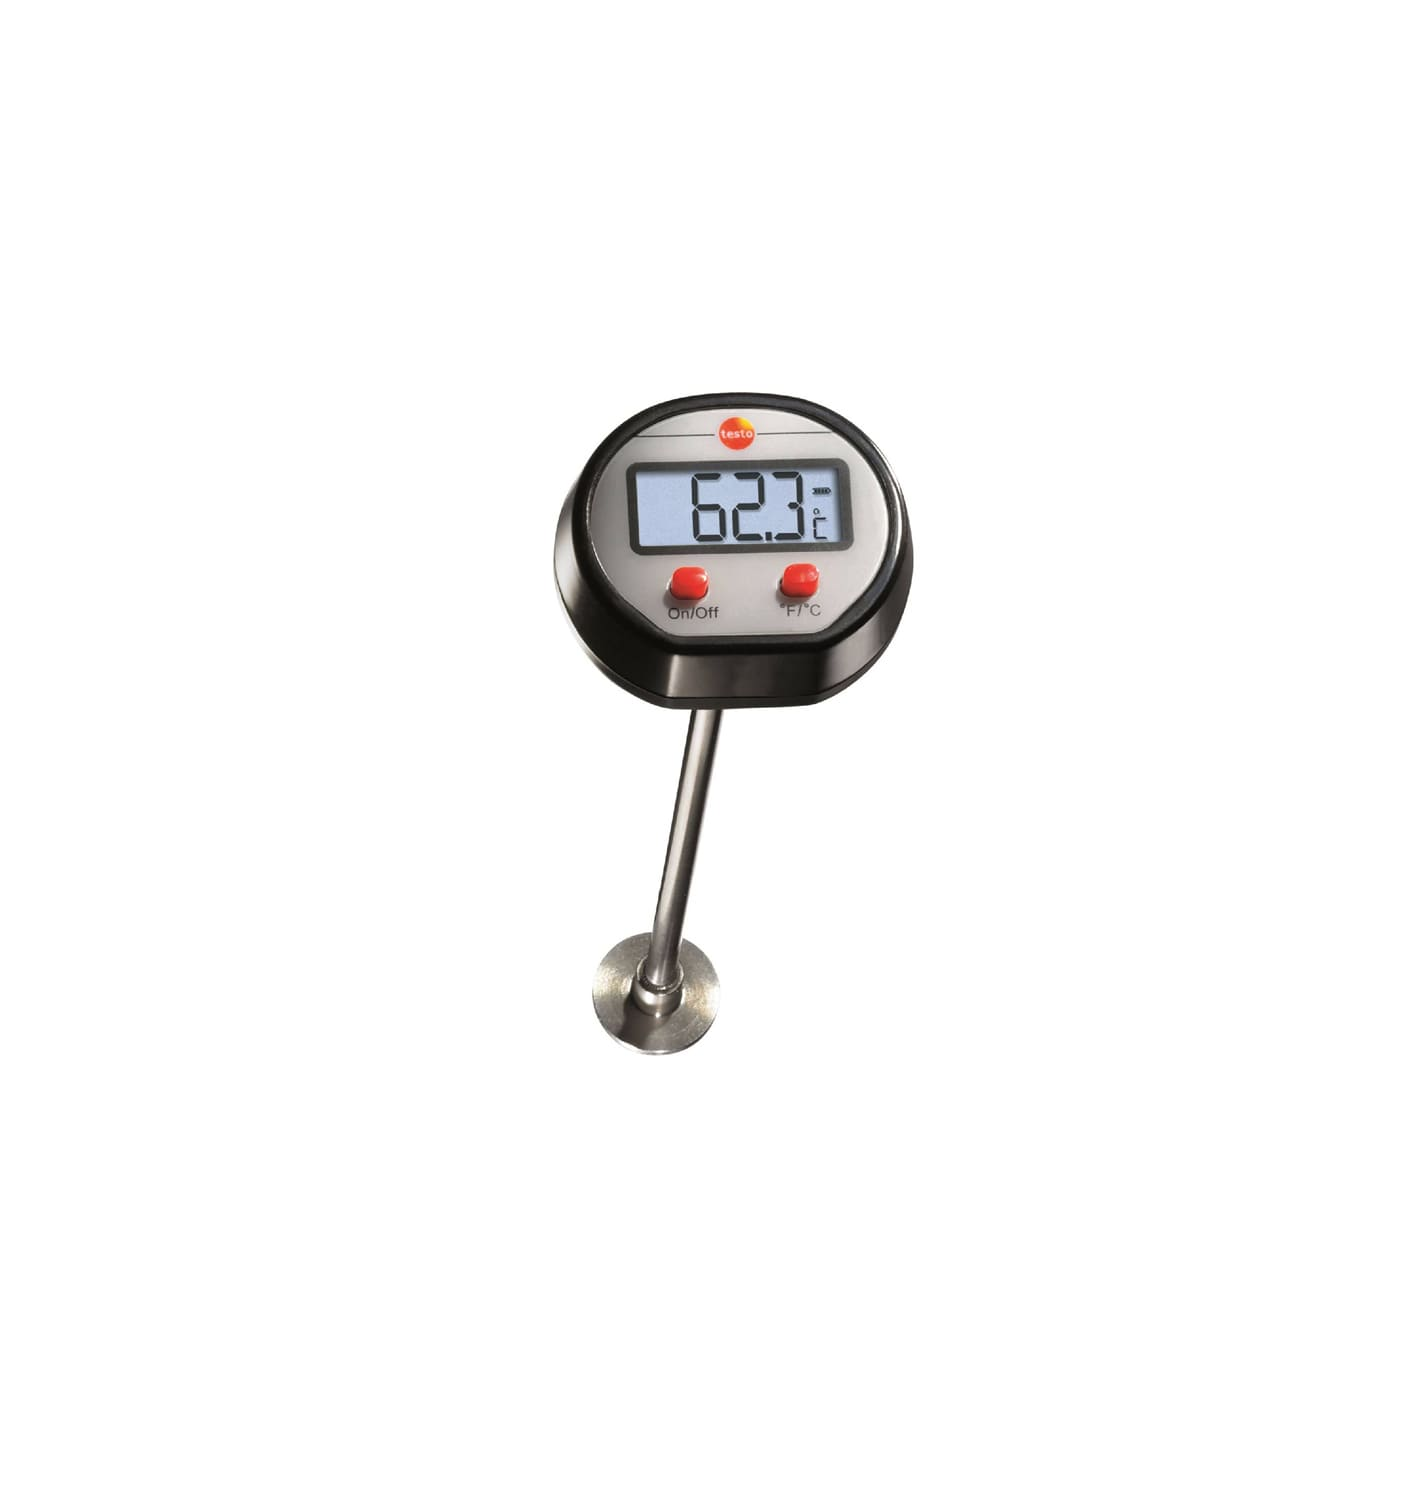 Mini surface thermometer